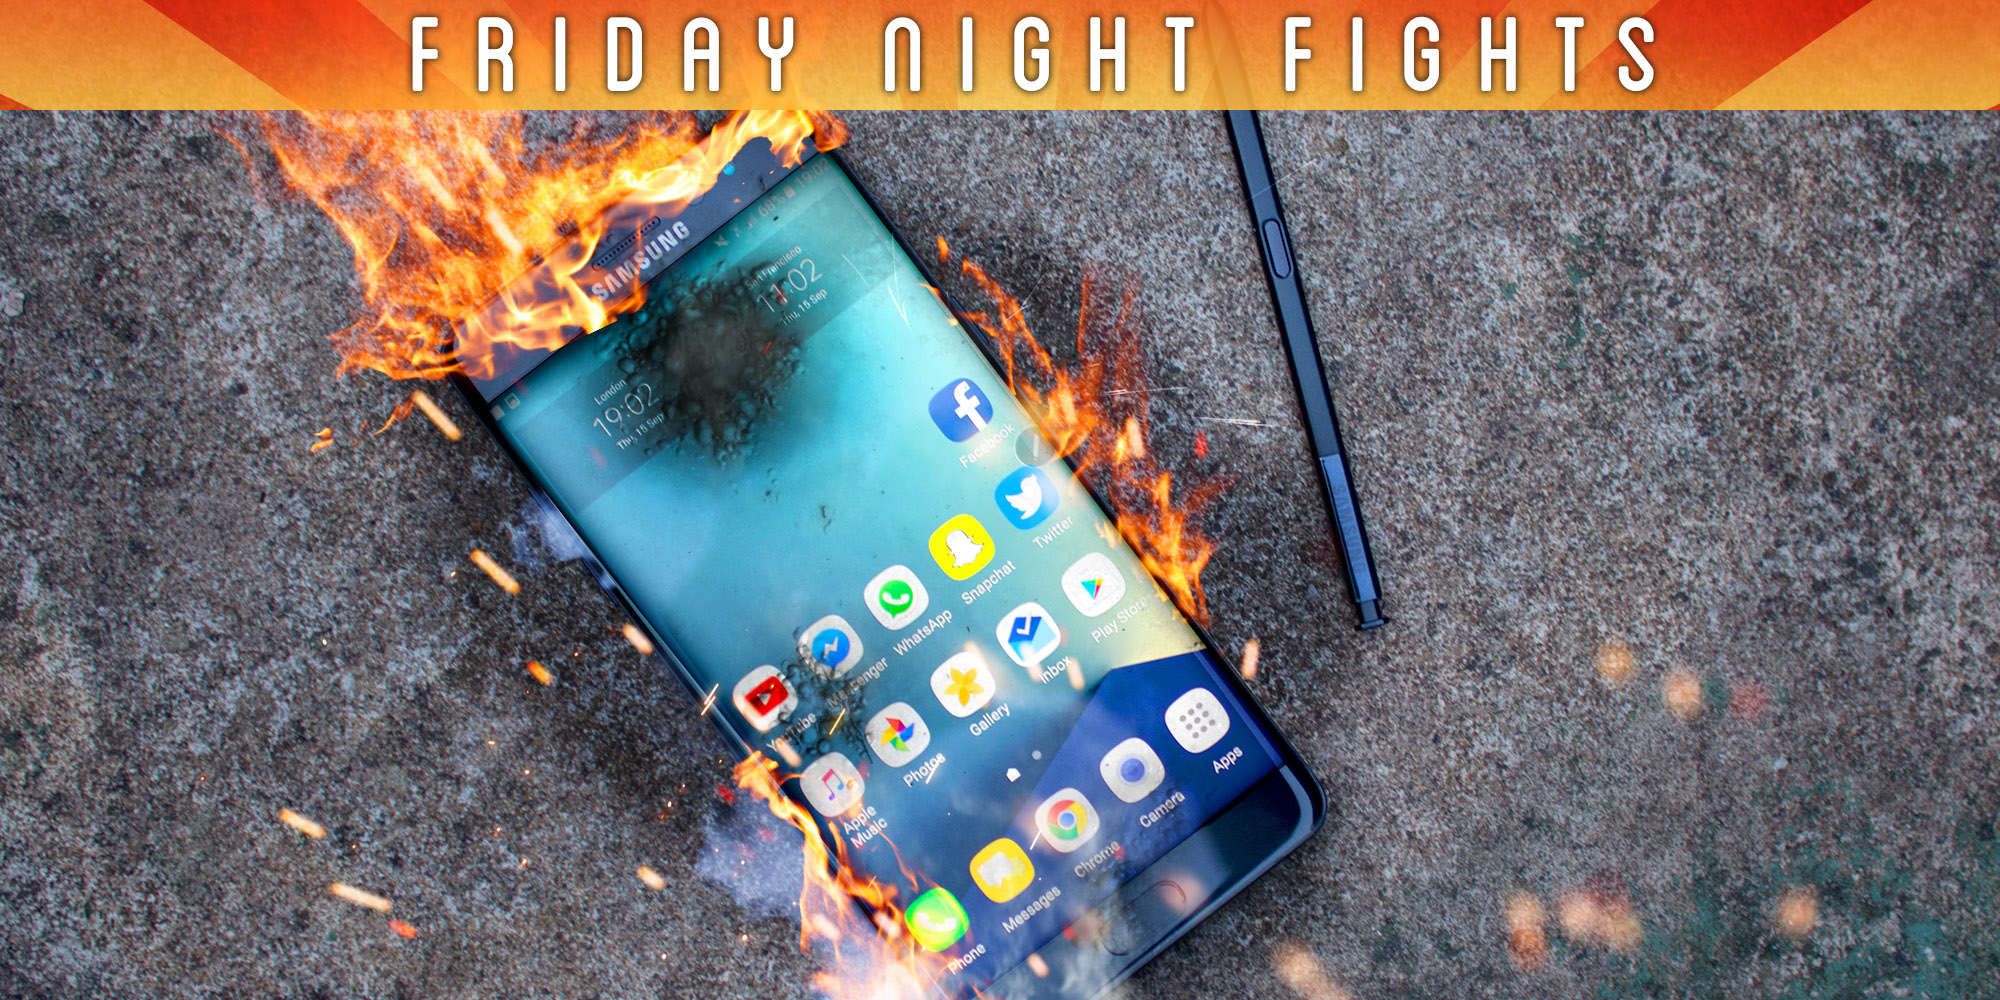 Galaxy Note 7 on fire